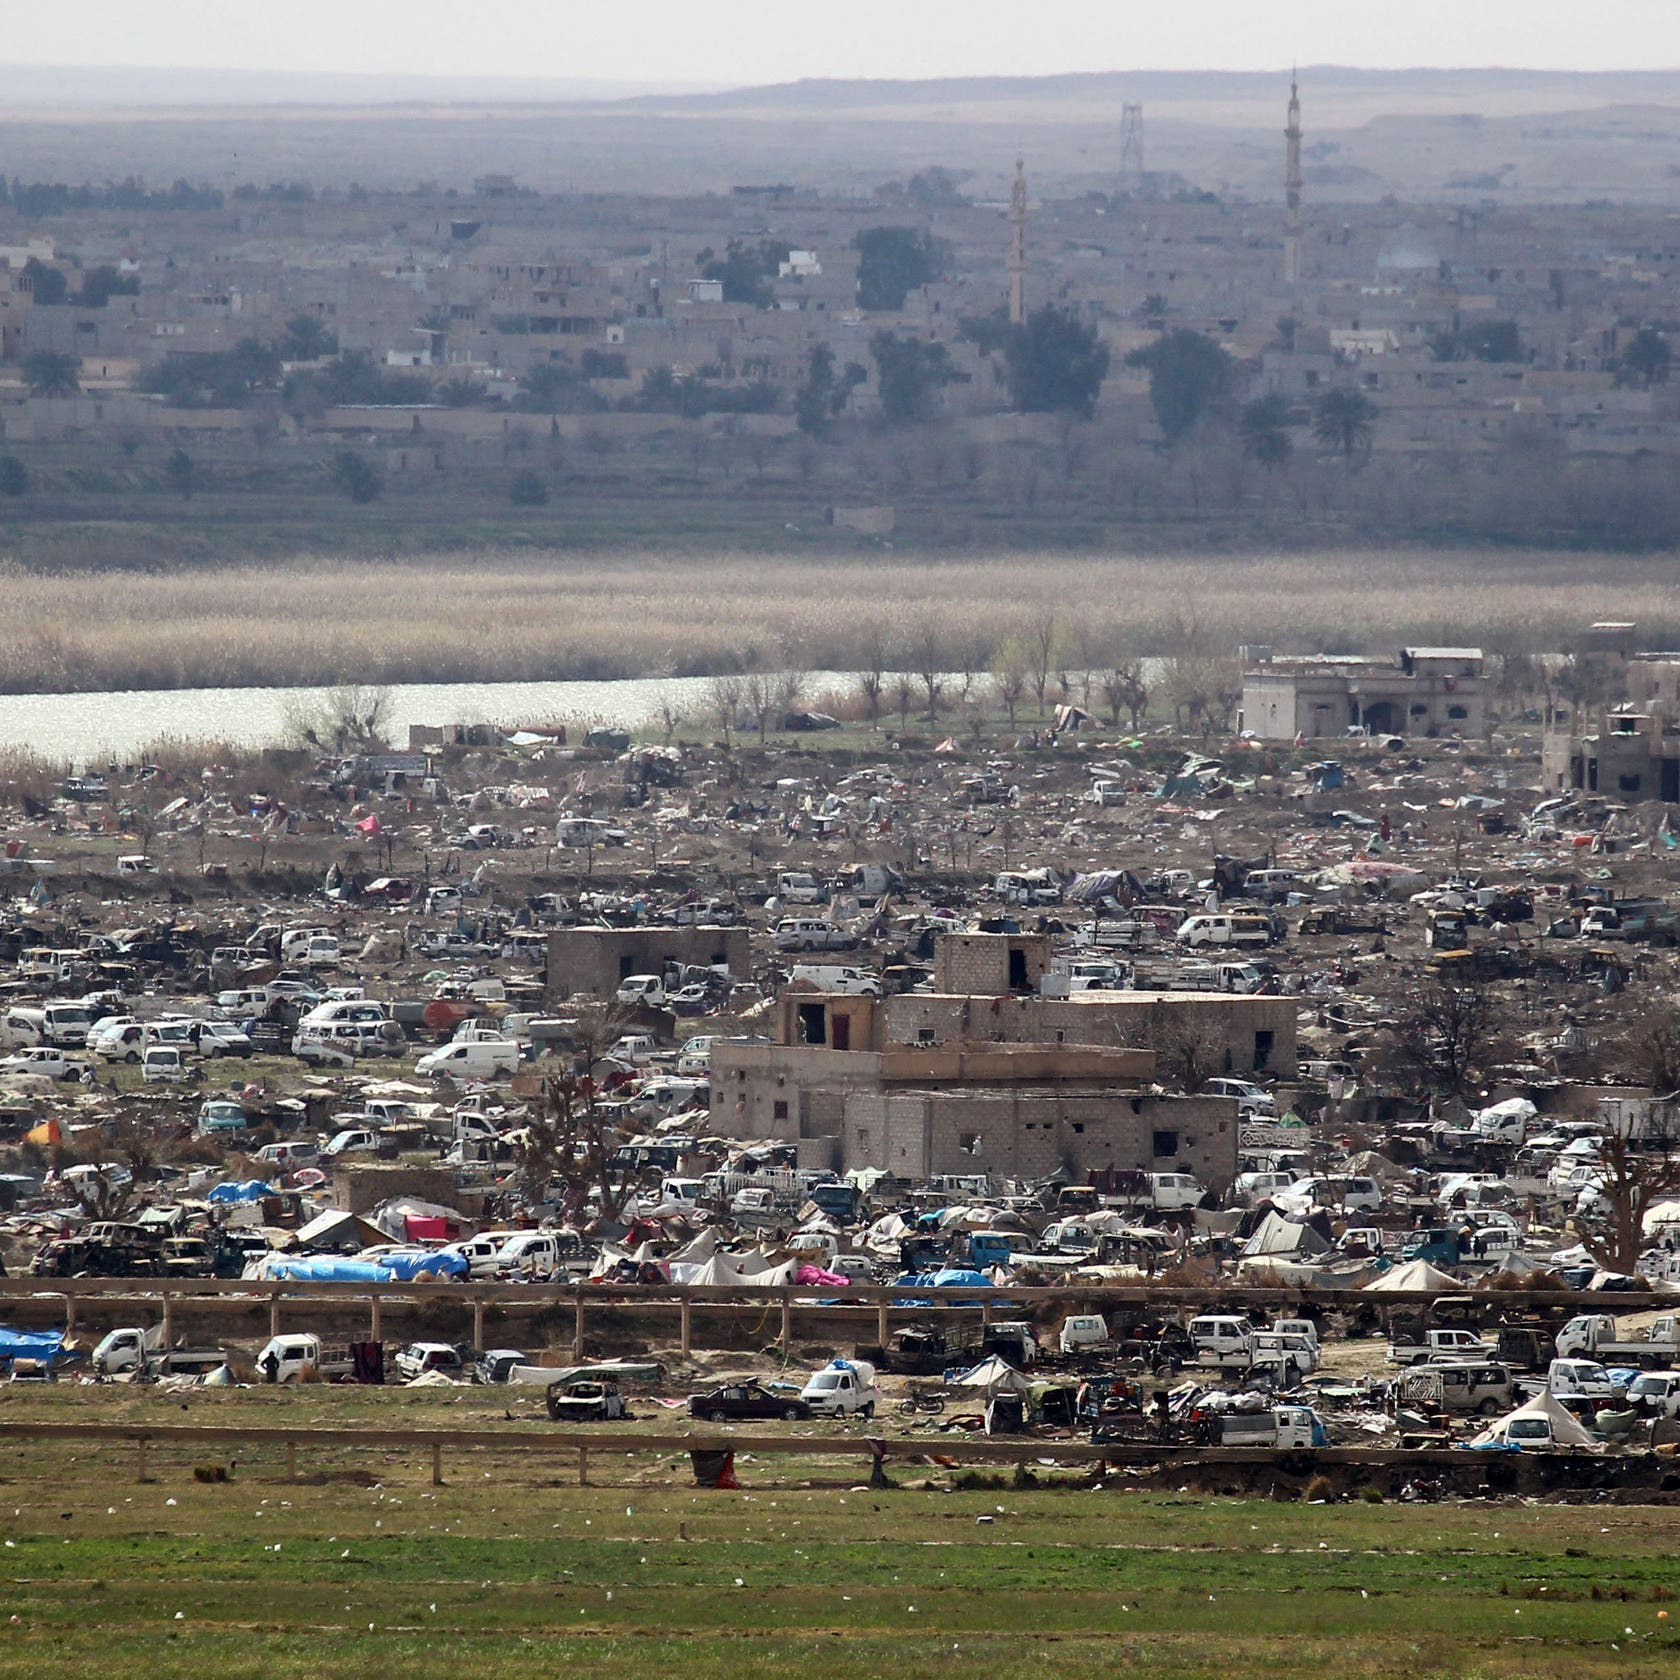 Iran-backed groups in Syria recruit locals to buy real estate in Deir Ezzor: Report